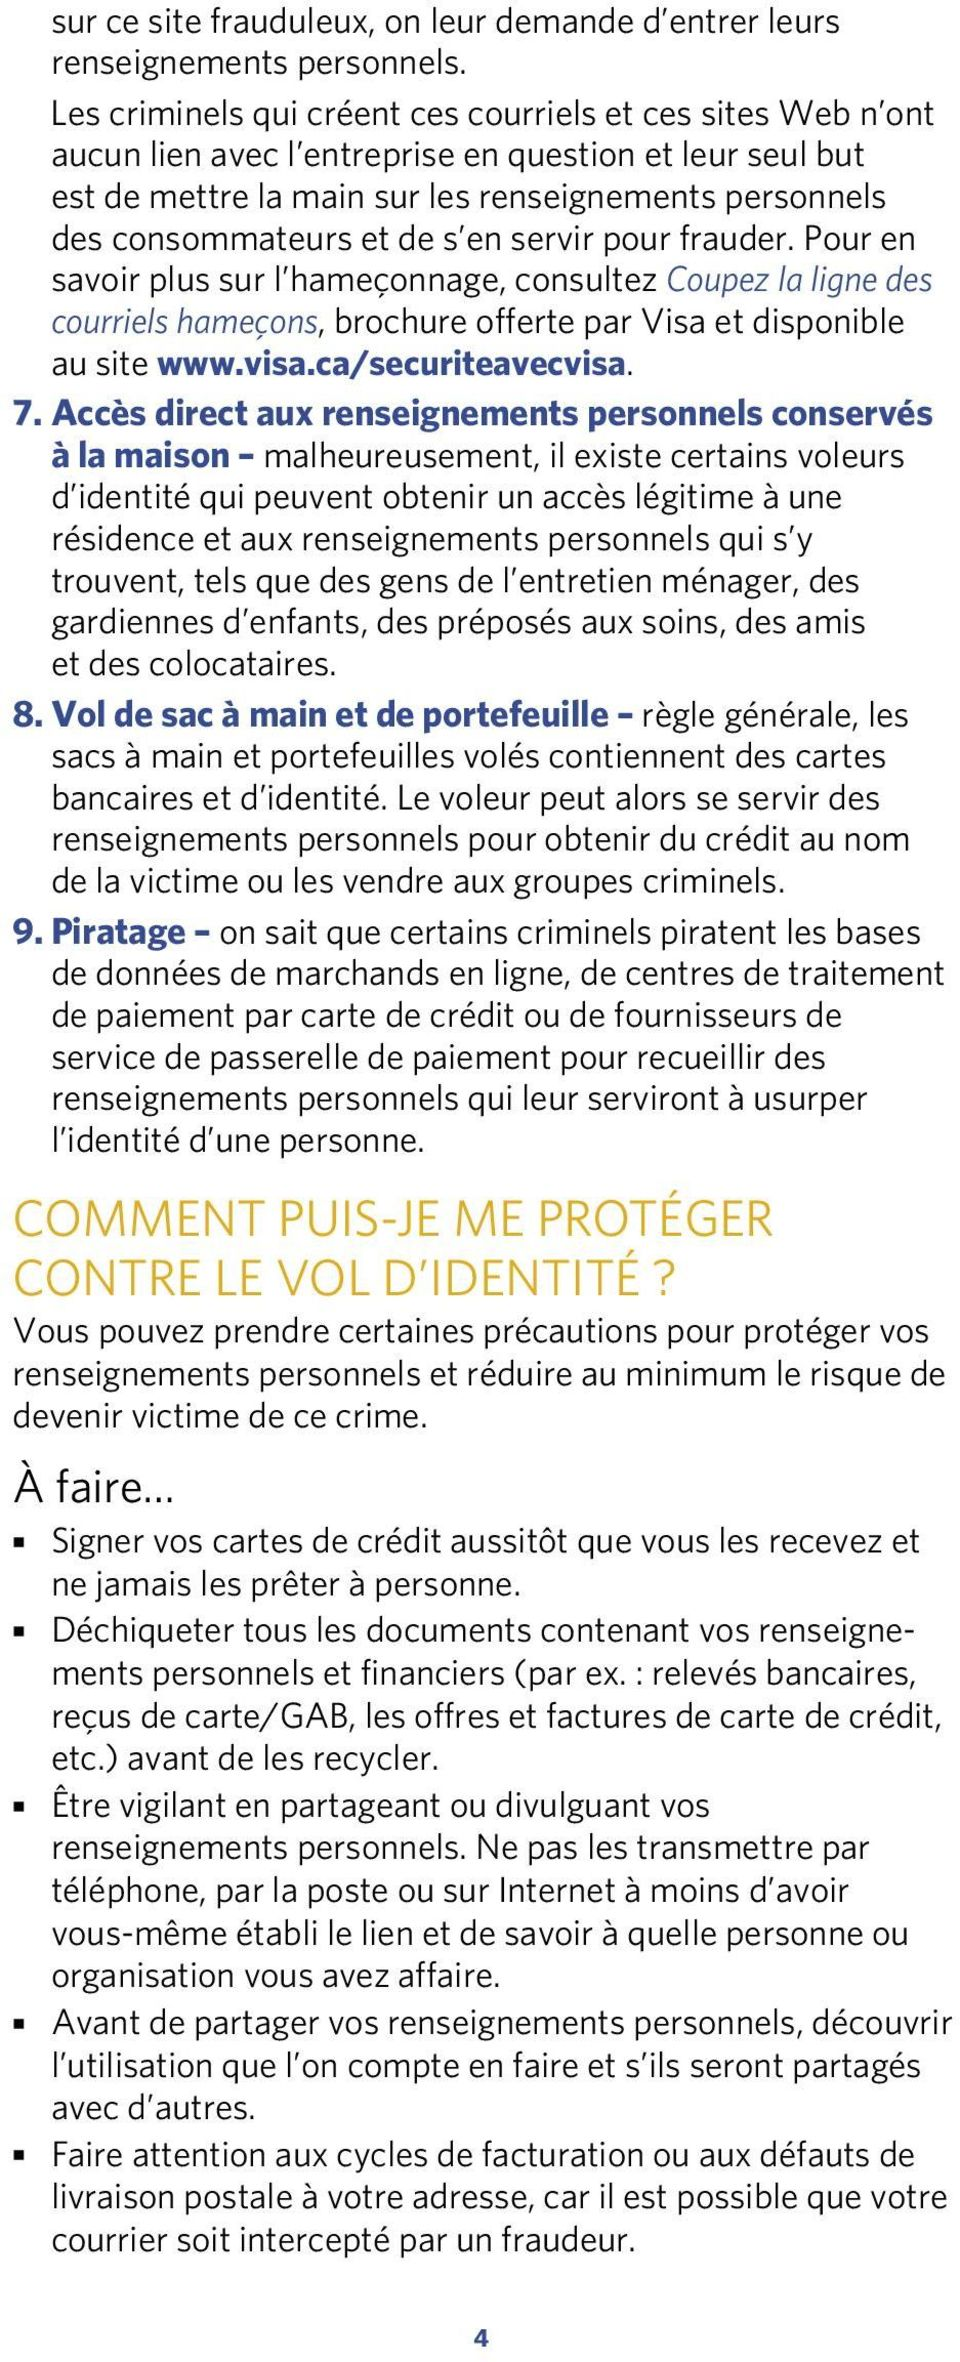 s en servir pour frauder. Pour en savoir plus sur l hameçonnage, consultez Coupez la ligne des courriels hameçons, brochure offerte par Visa et disponible au site www.visa.ca/securiteavecvisa. 7.